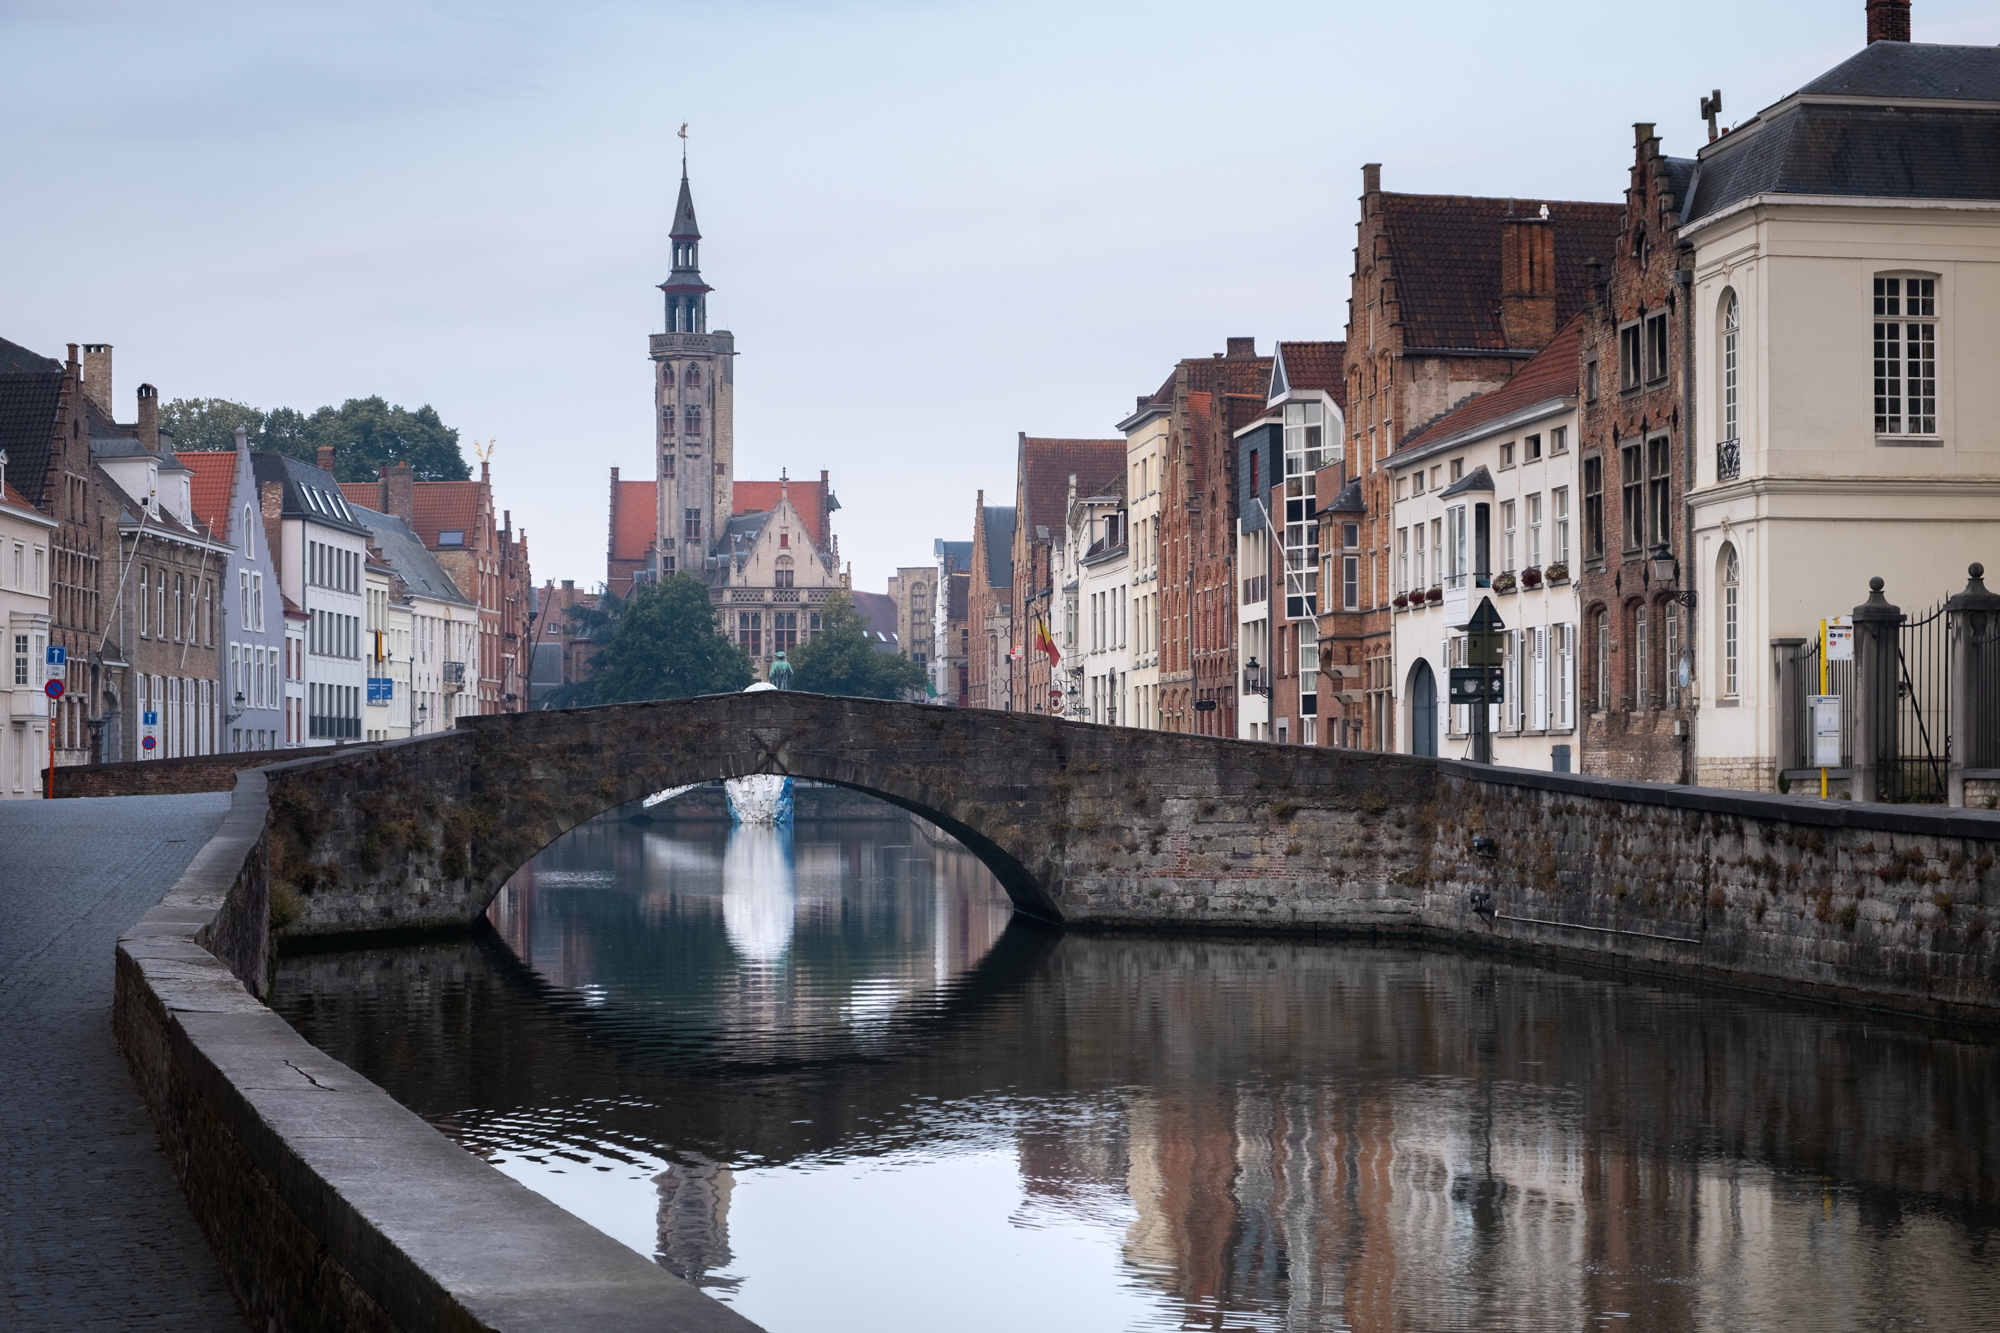 A photo of Poortersloge along the canal in Bruges , Belgium taken by Trevor Sherwin